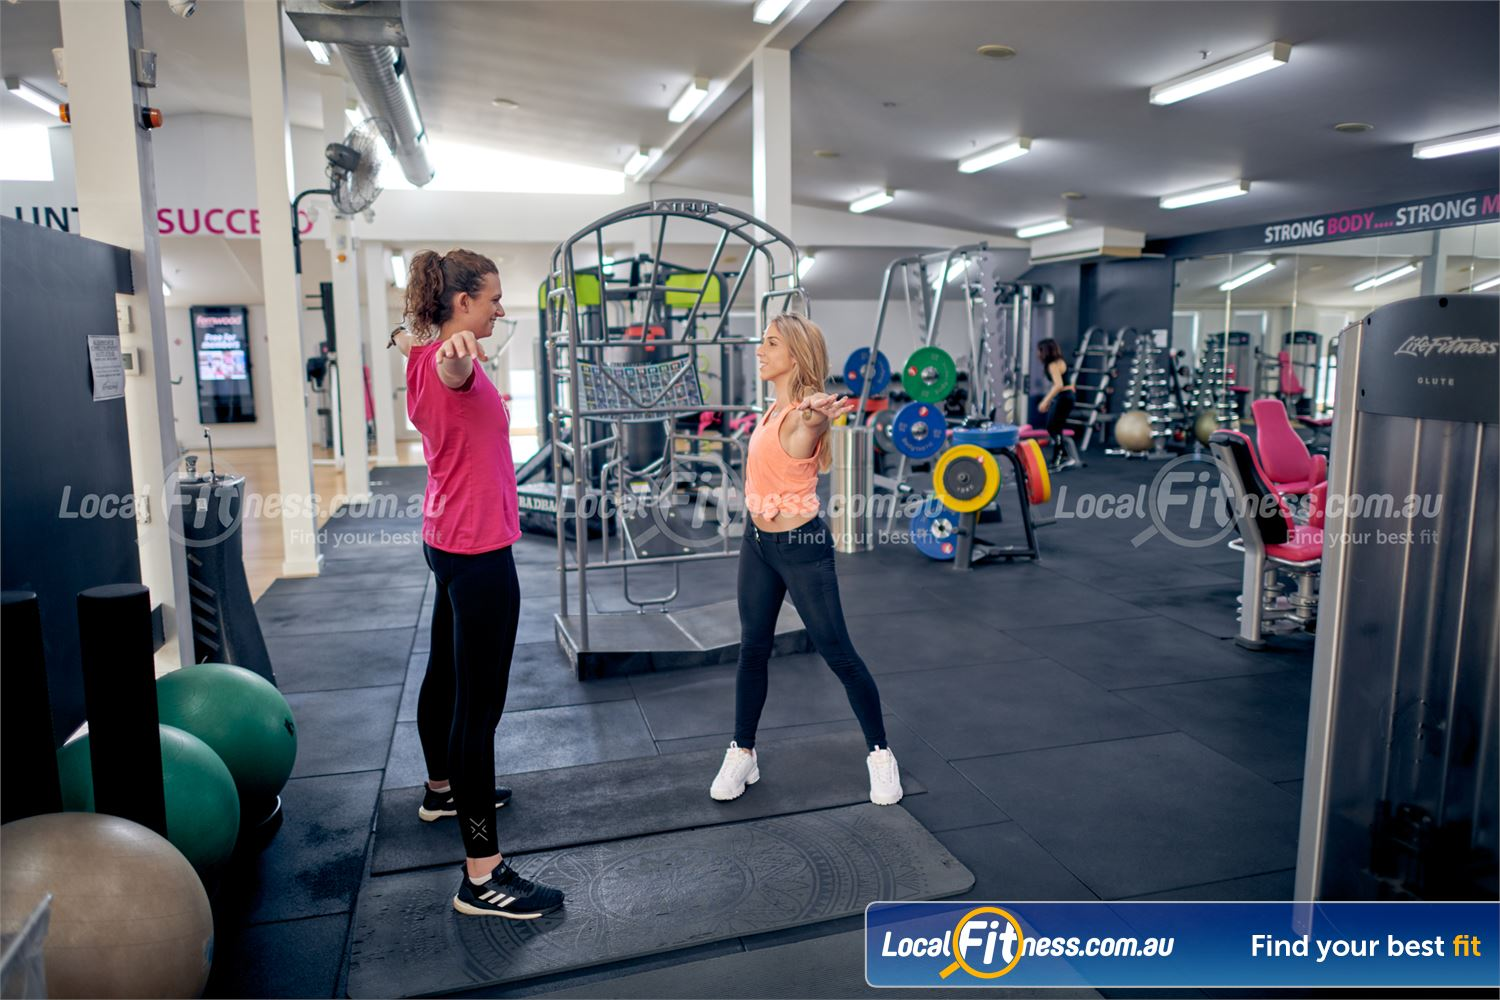 Fernwood Fitness Camberwell Fully equipped stretch area with stretching cage, mats, fitballs and more.